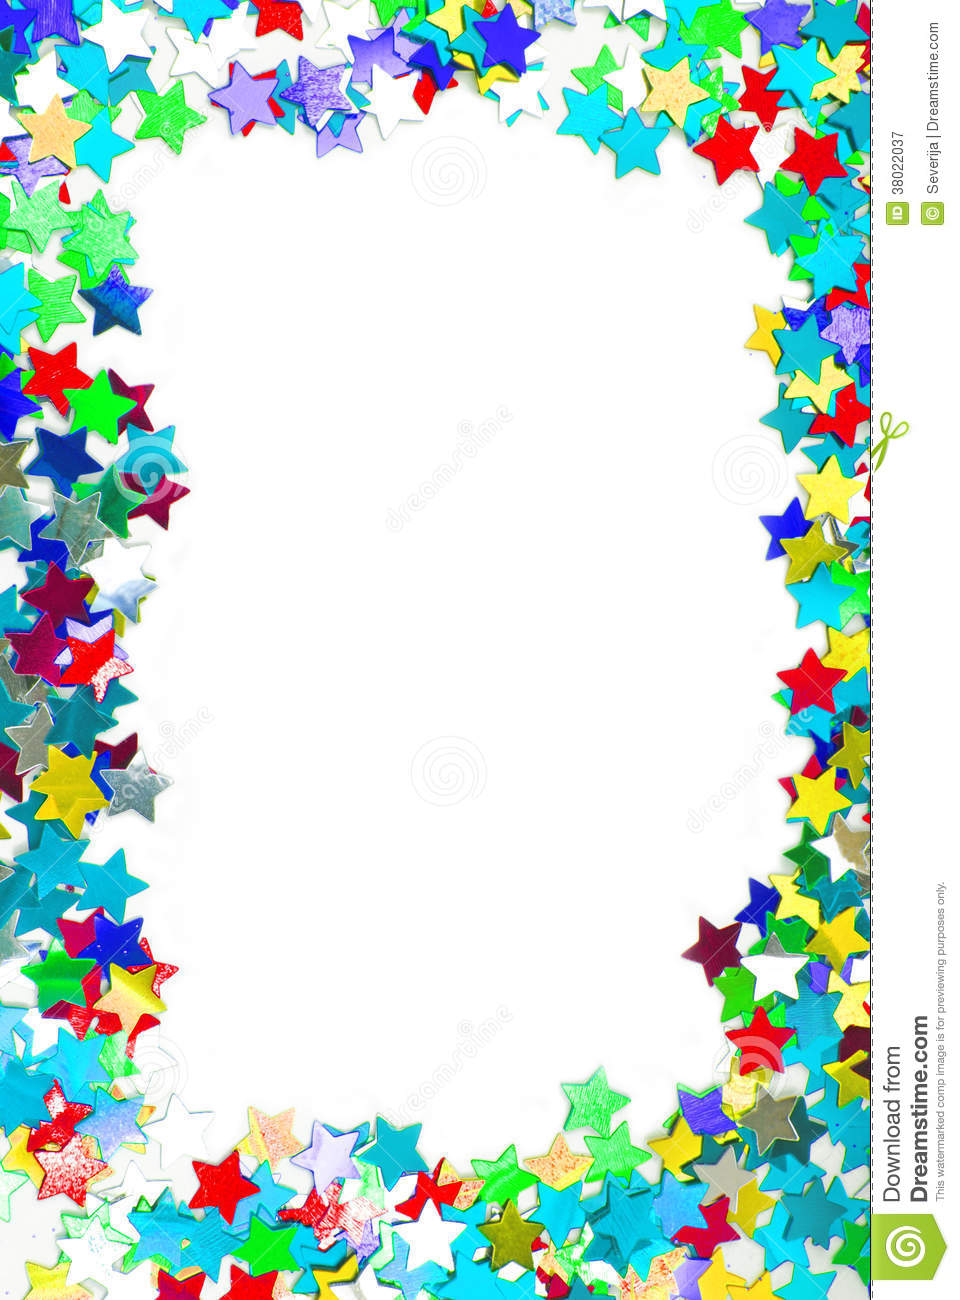 Confetti Colorful Frame Border Stock Image Image Of